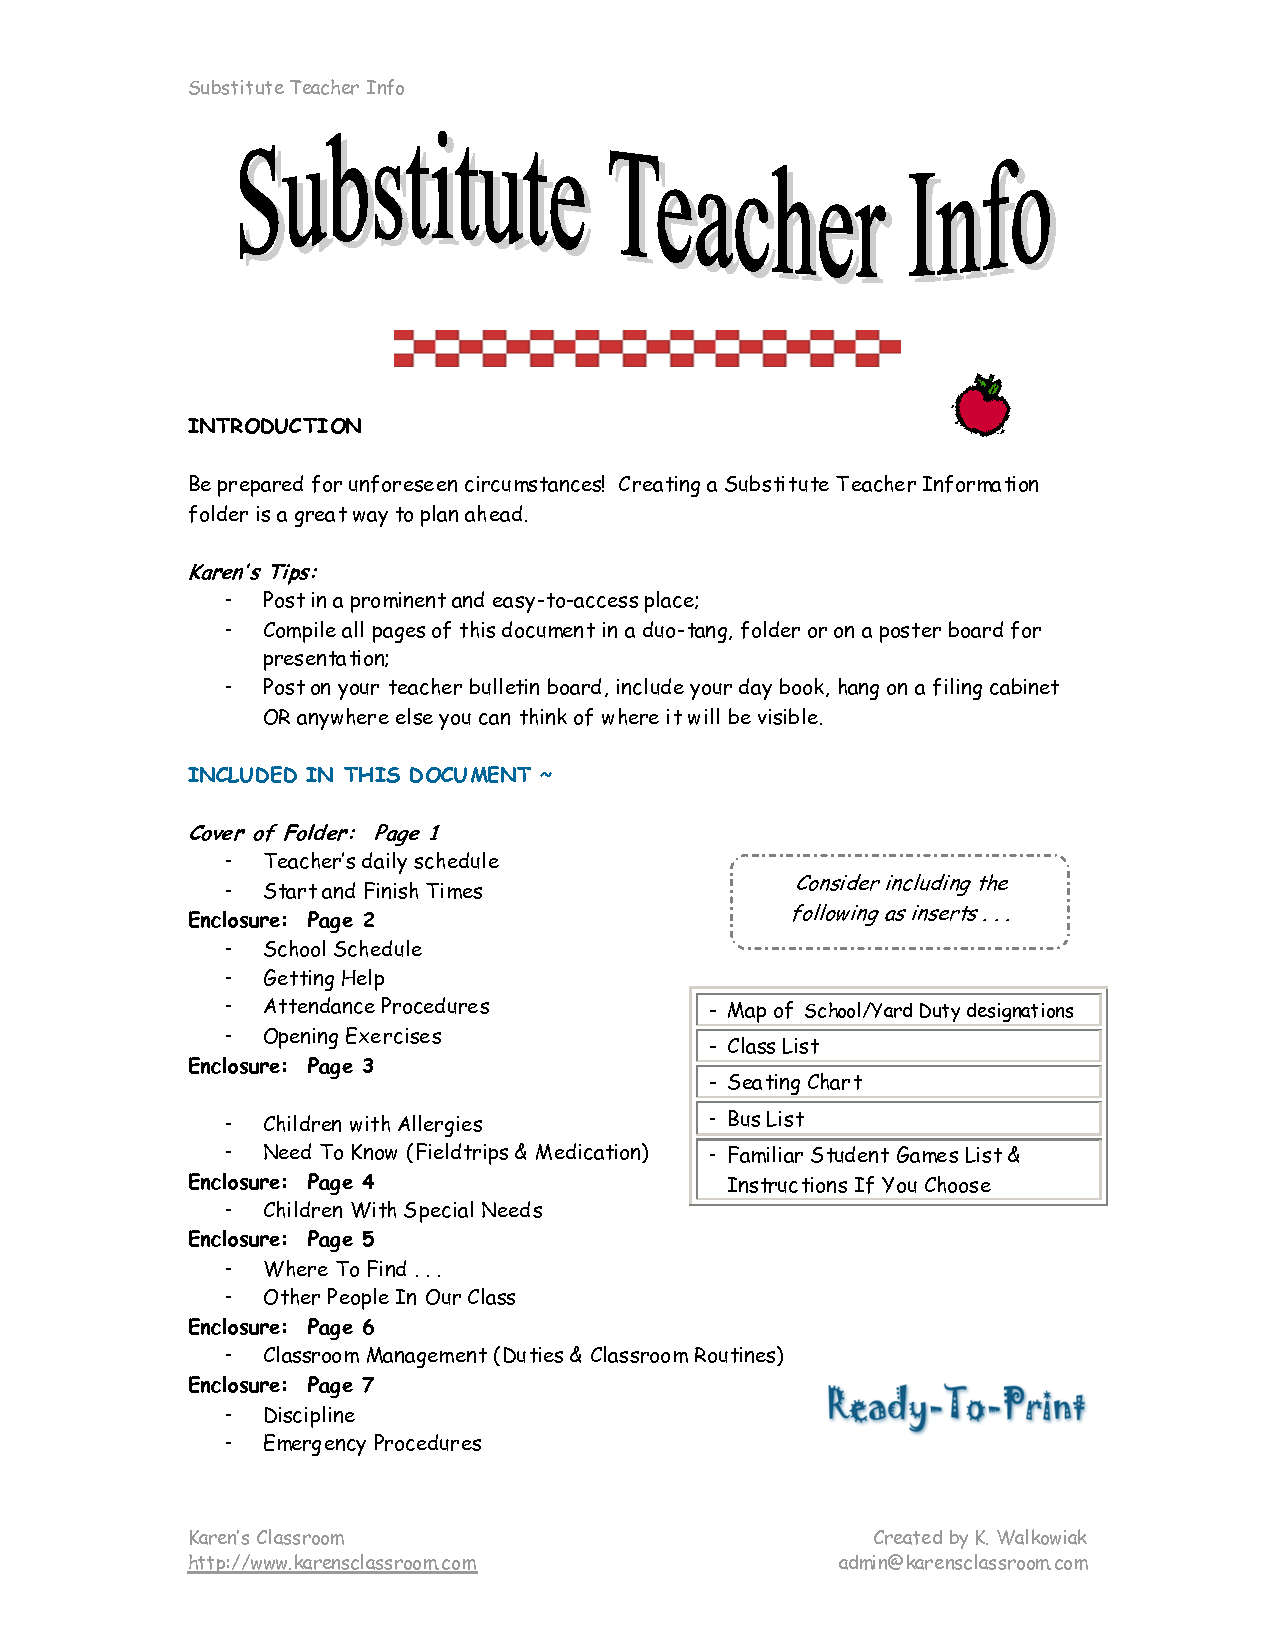 substitute teacher sample resume samples visualcv database - Substitute Teacher Resume Sample